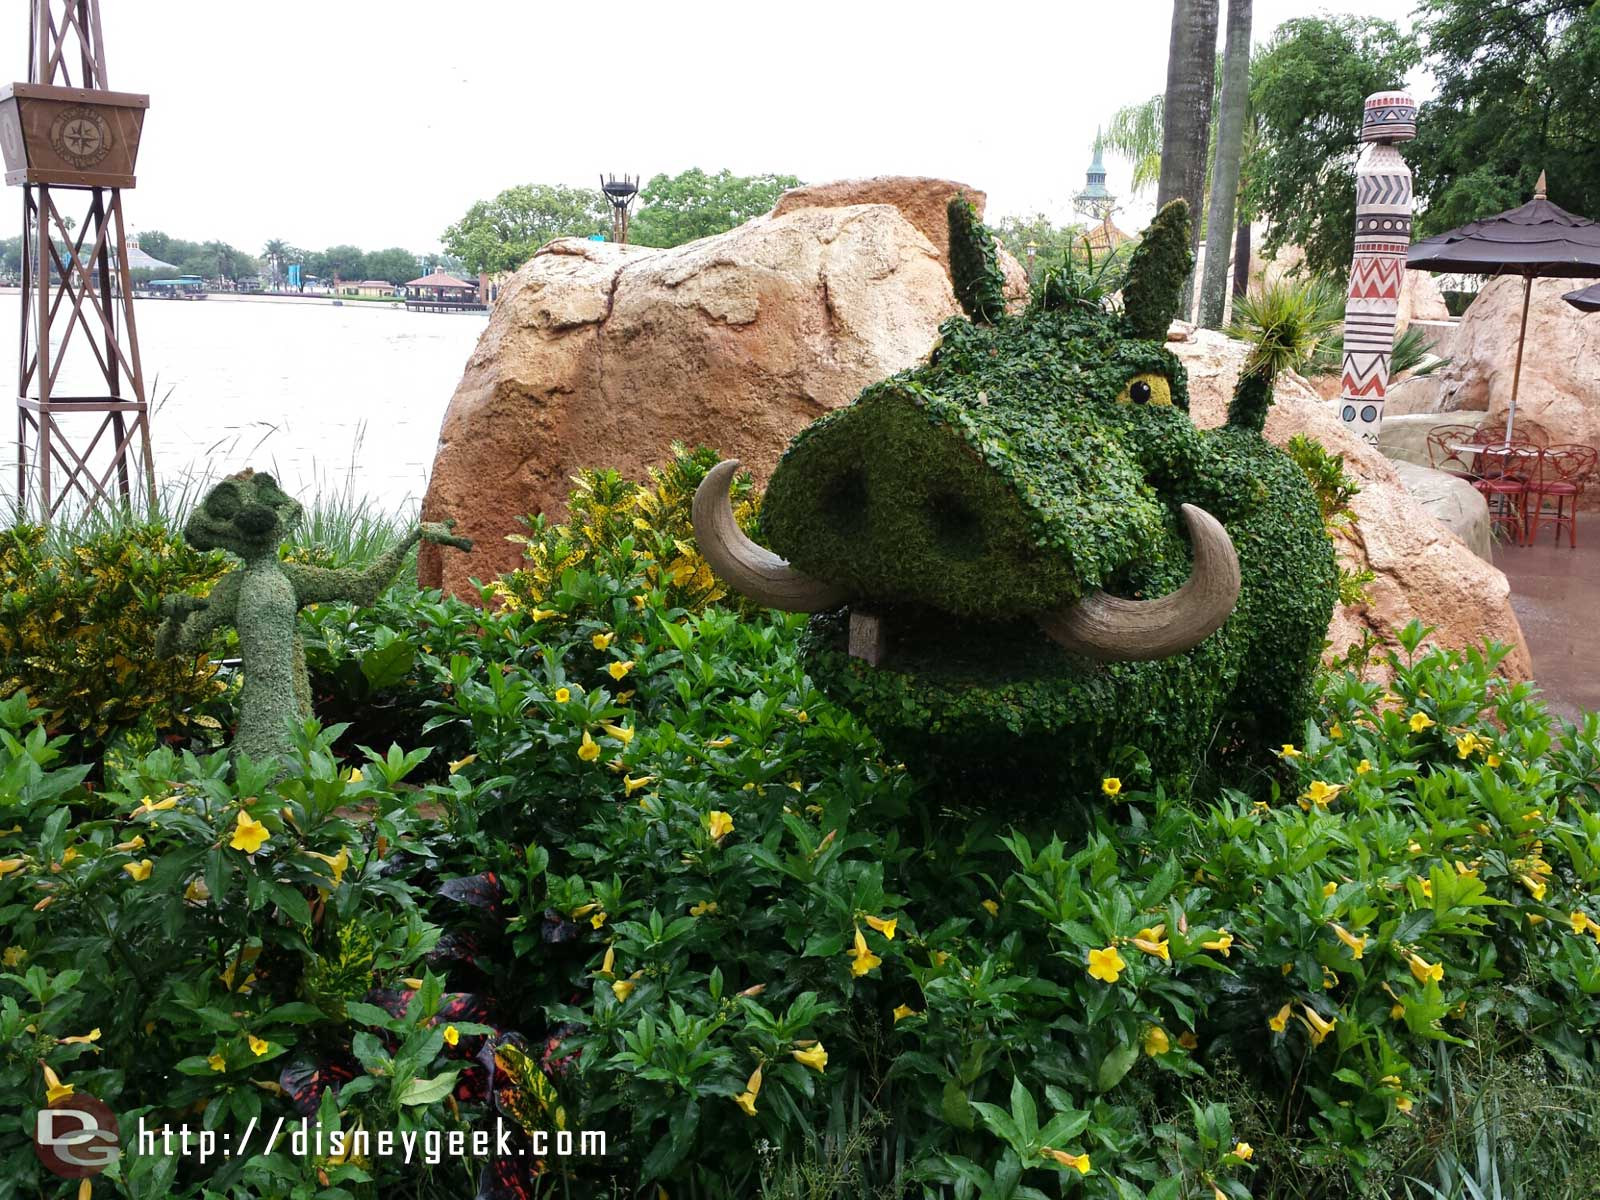 Timon & Pumba –  Epcot International Flower & Garden Festival